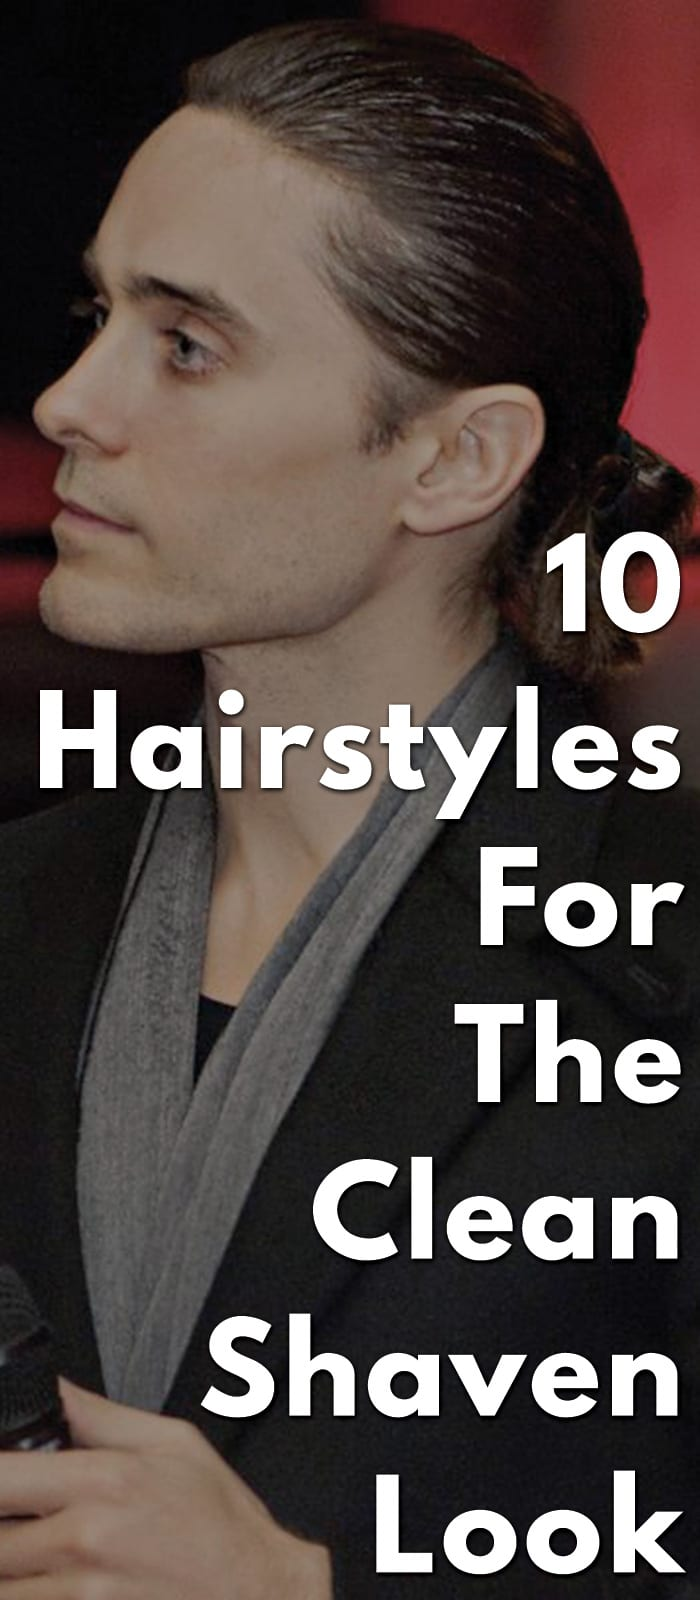 10-Hairstyles-For-The-Clean-Shaven-Look.